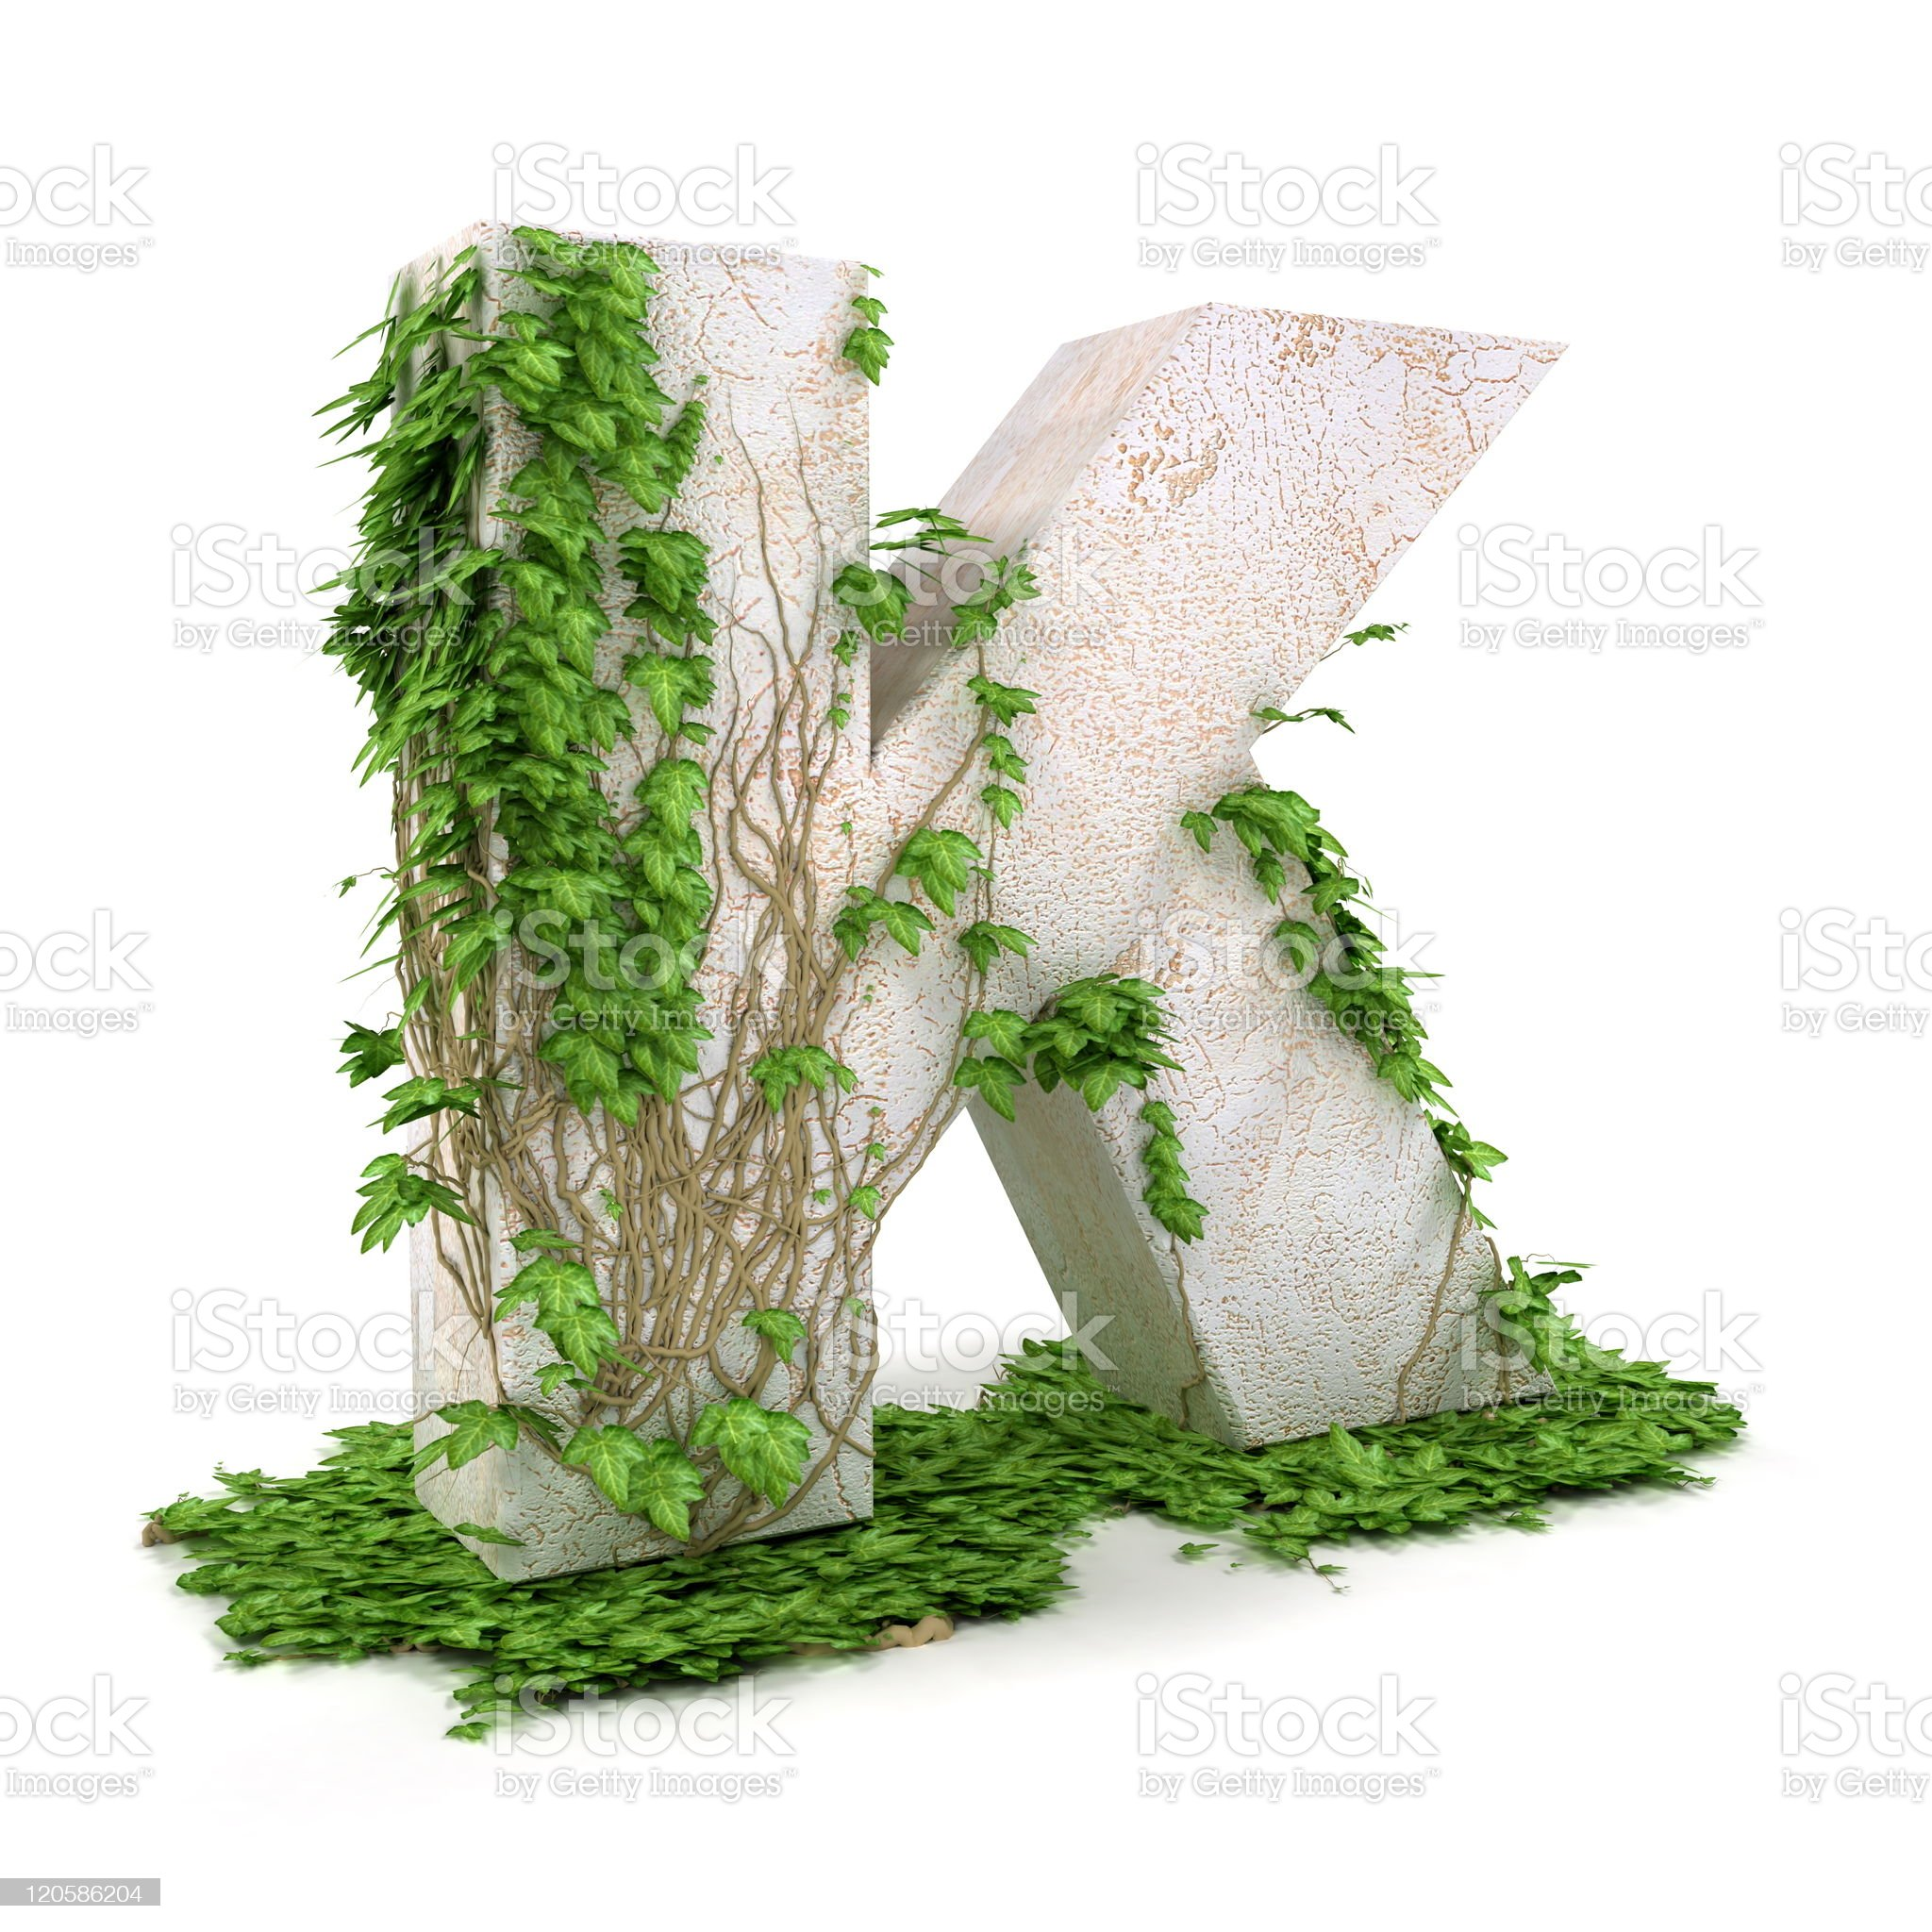 Ivy letter K isolated on white background. royalty-free stock photo